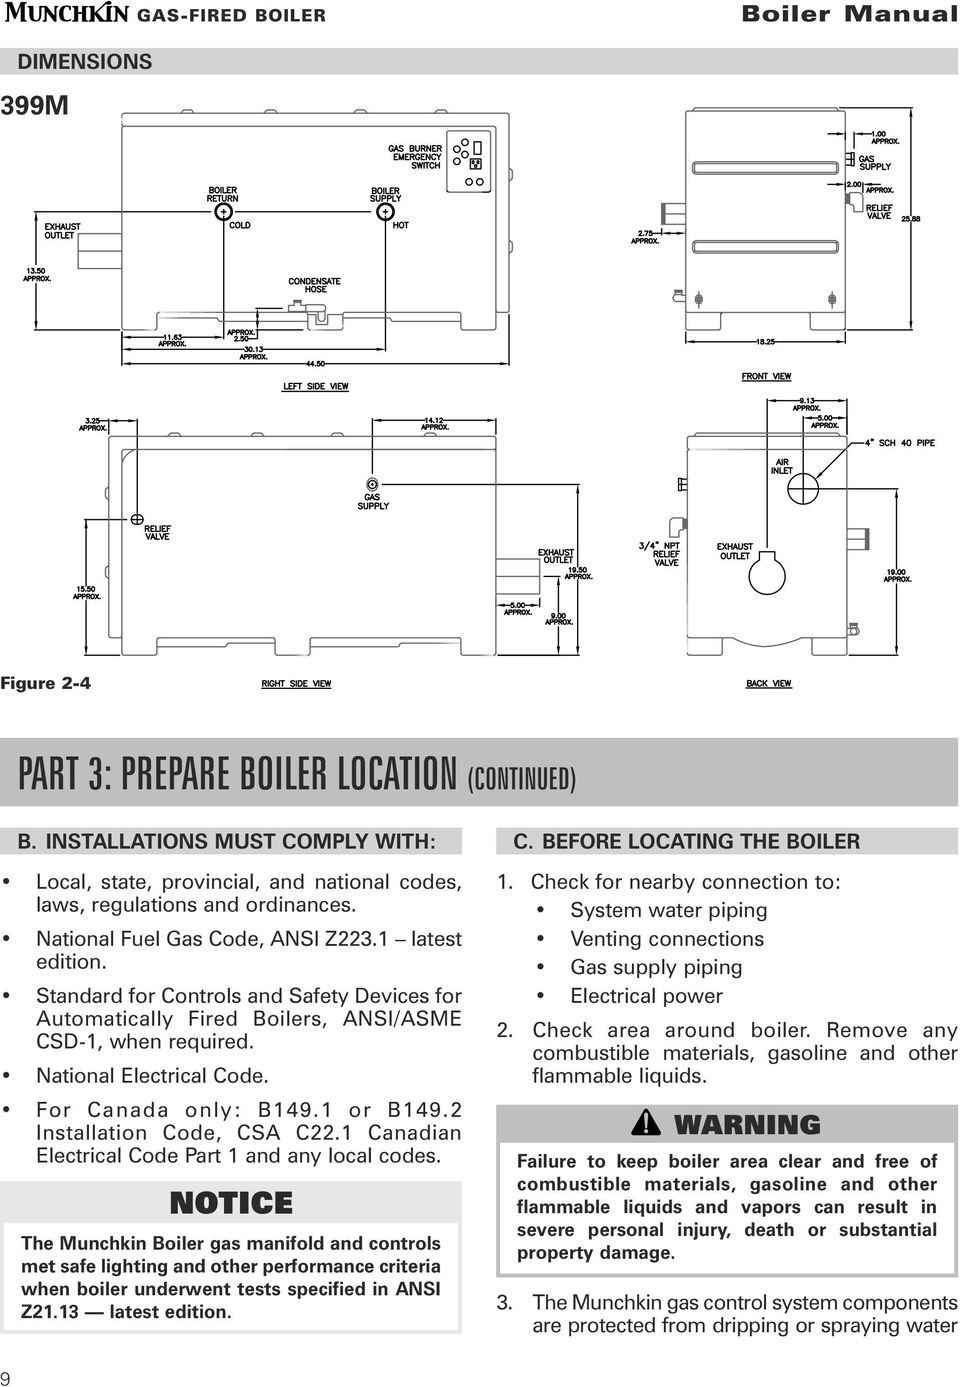 boiler manual installation startup maintenance parts warning pdf boiler control wiring for canada only b149 1 or b149 2 installation code, csa c22